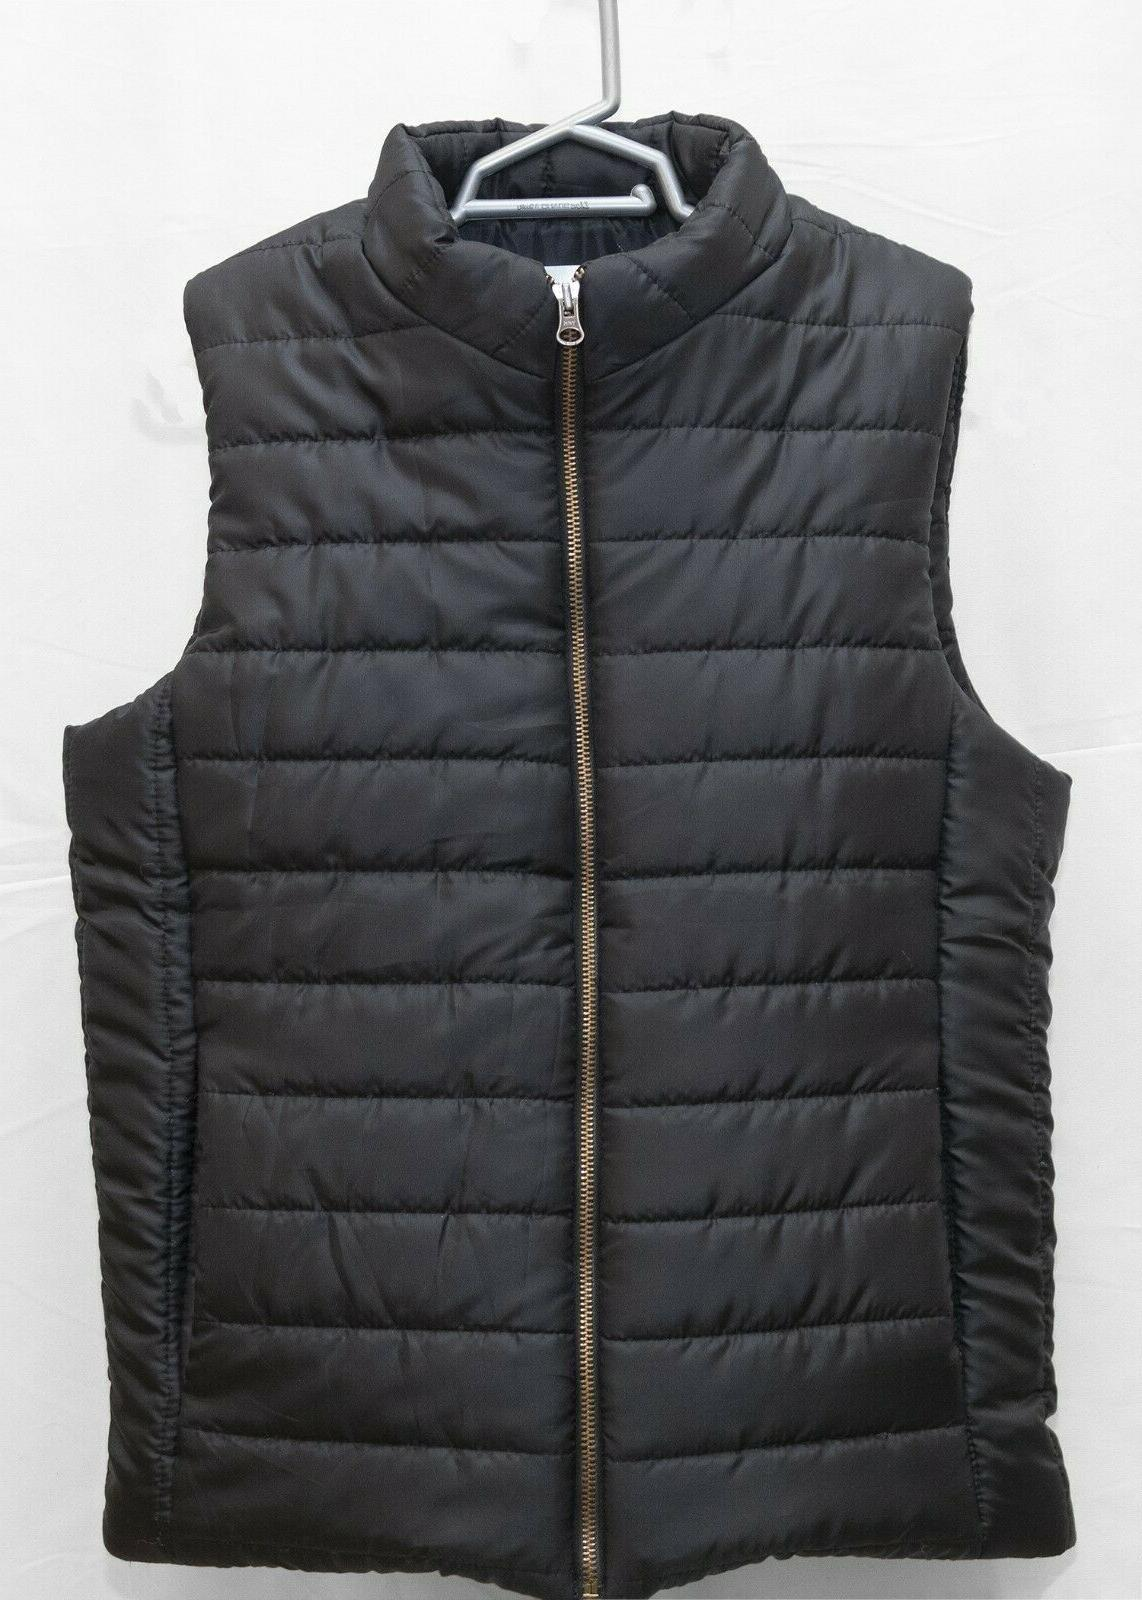 puffer vest water resistant quilted padded sleeveless